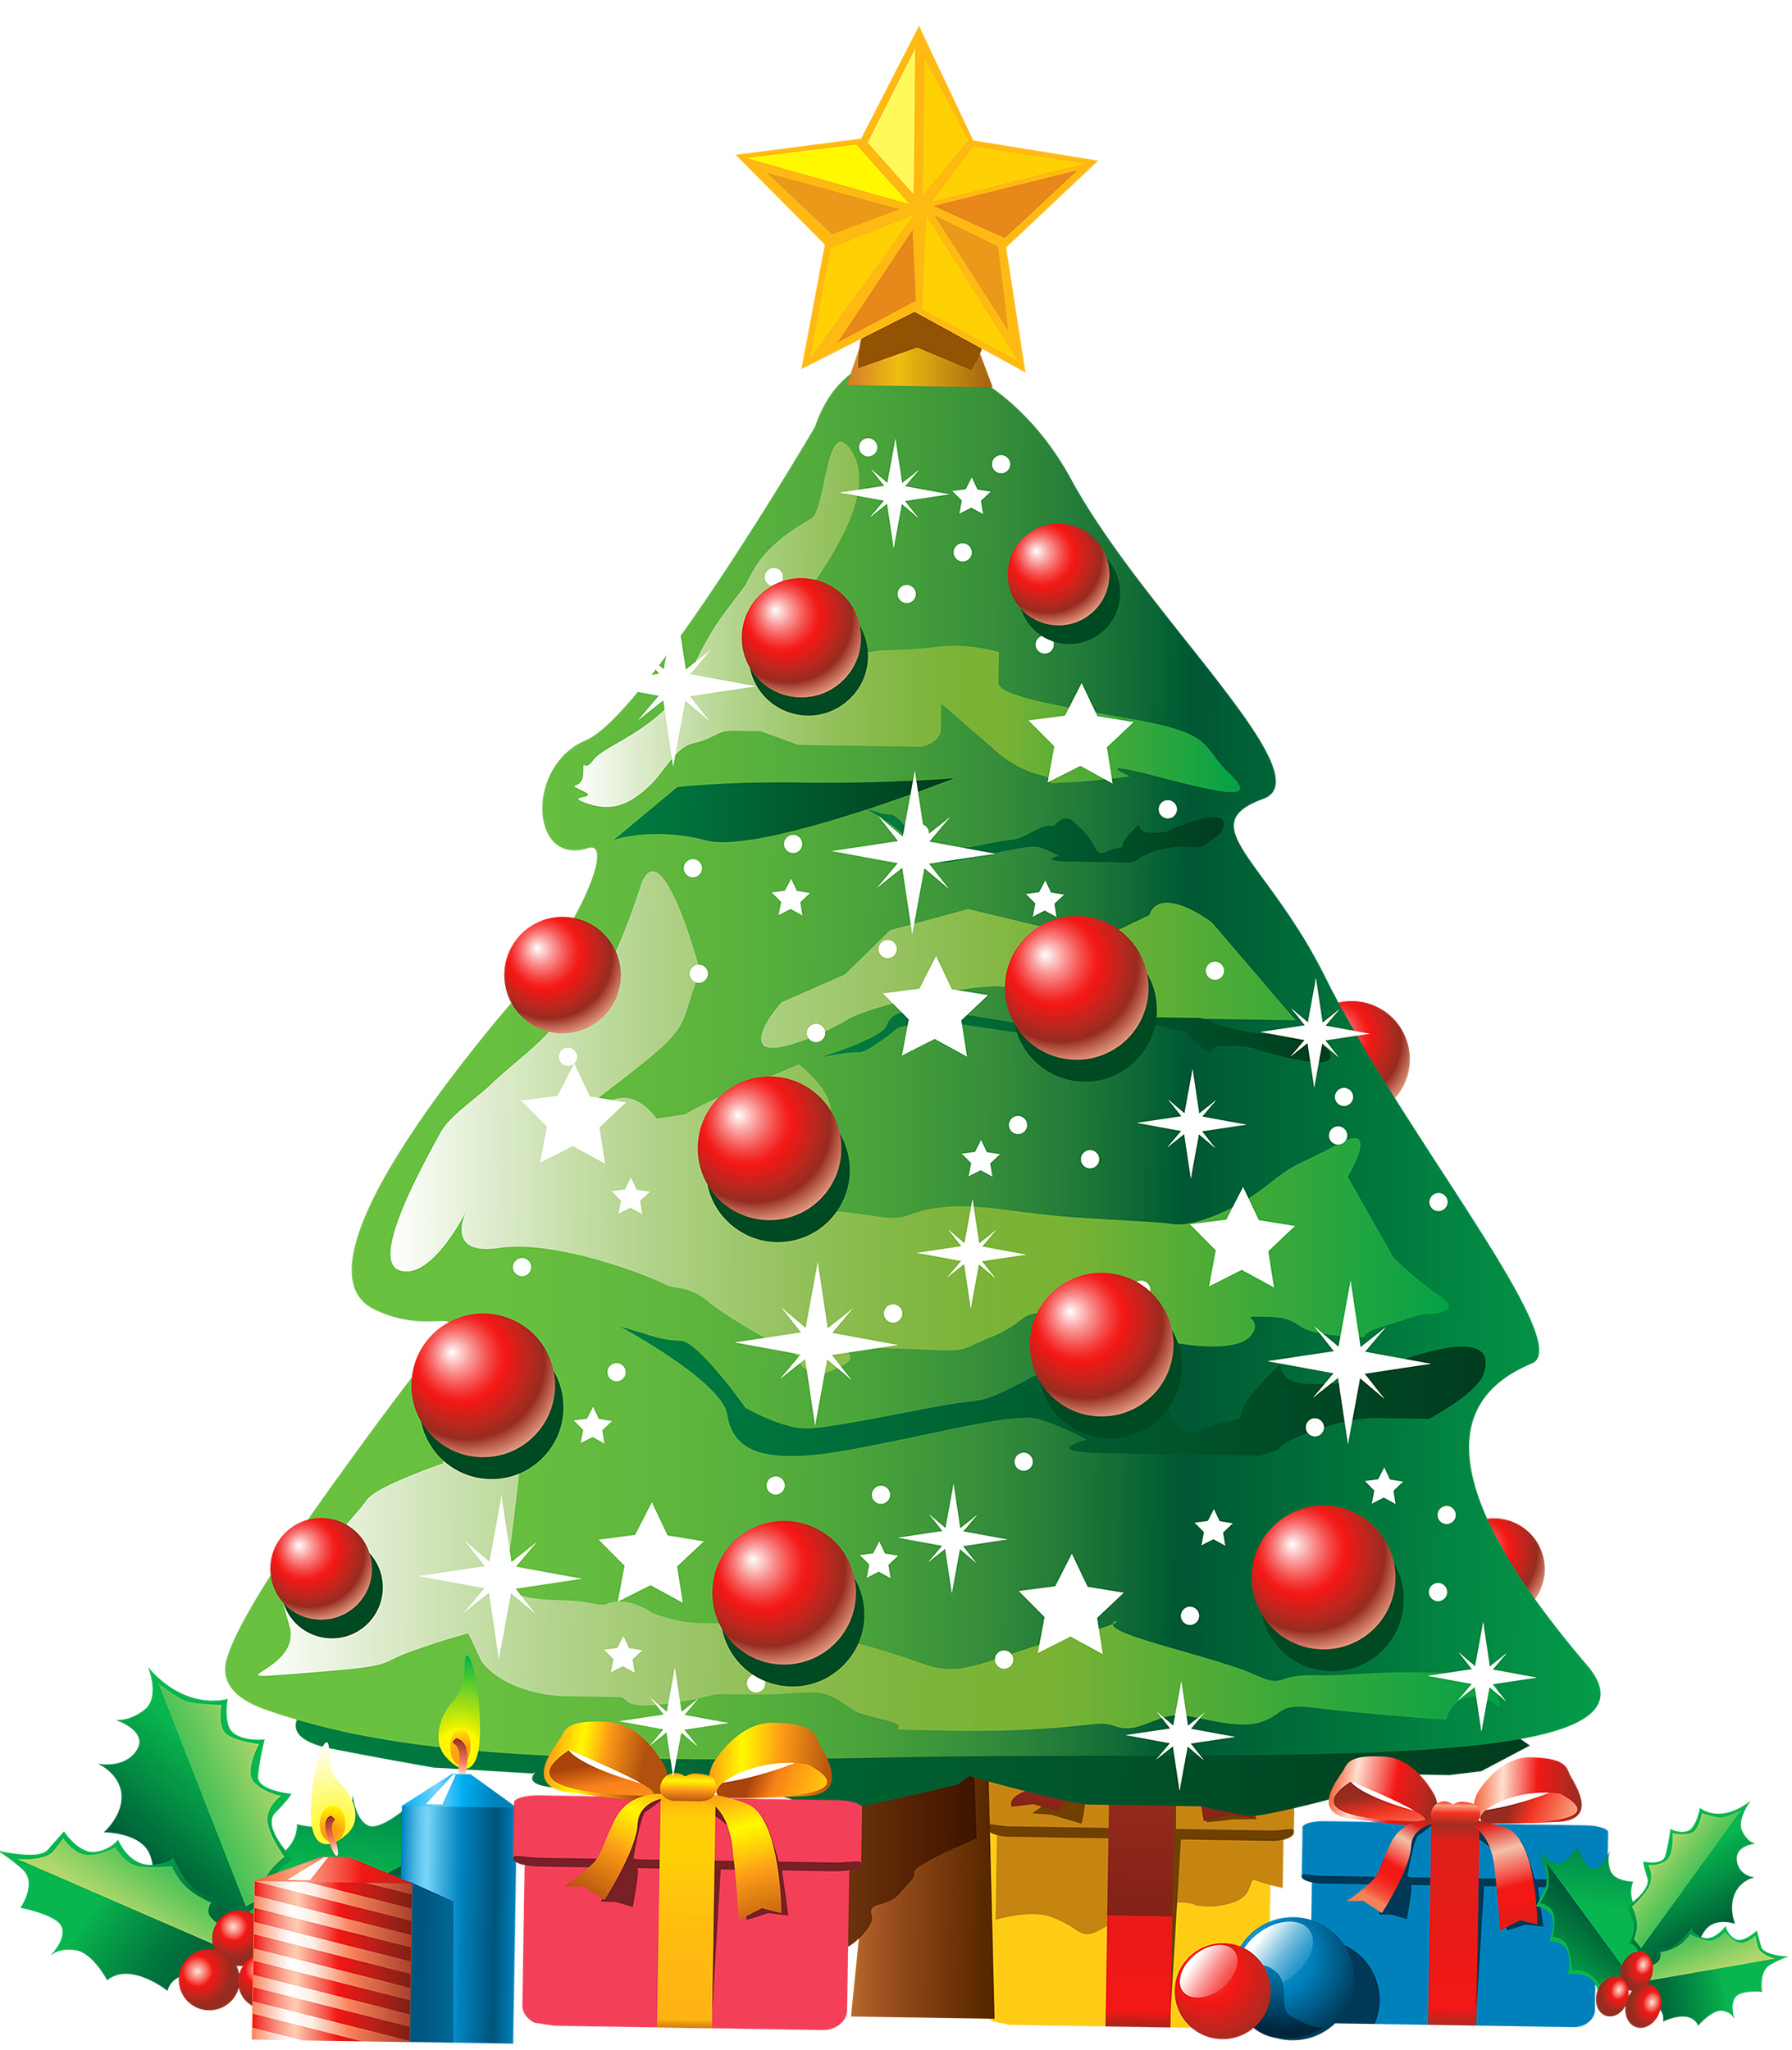 Door clipart xmas. Christmas tree with gifts